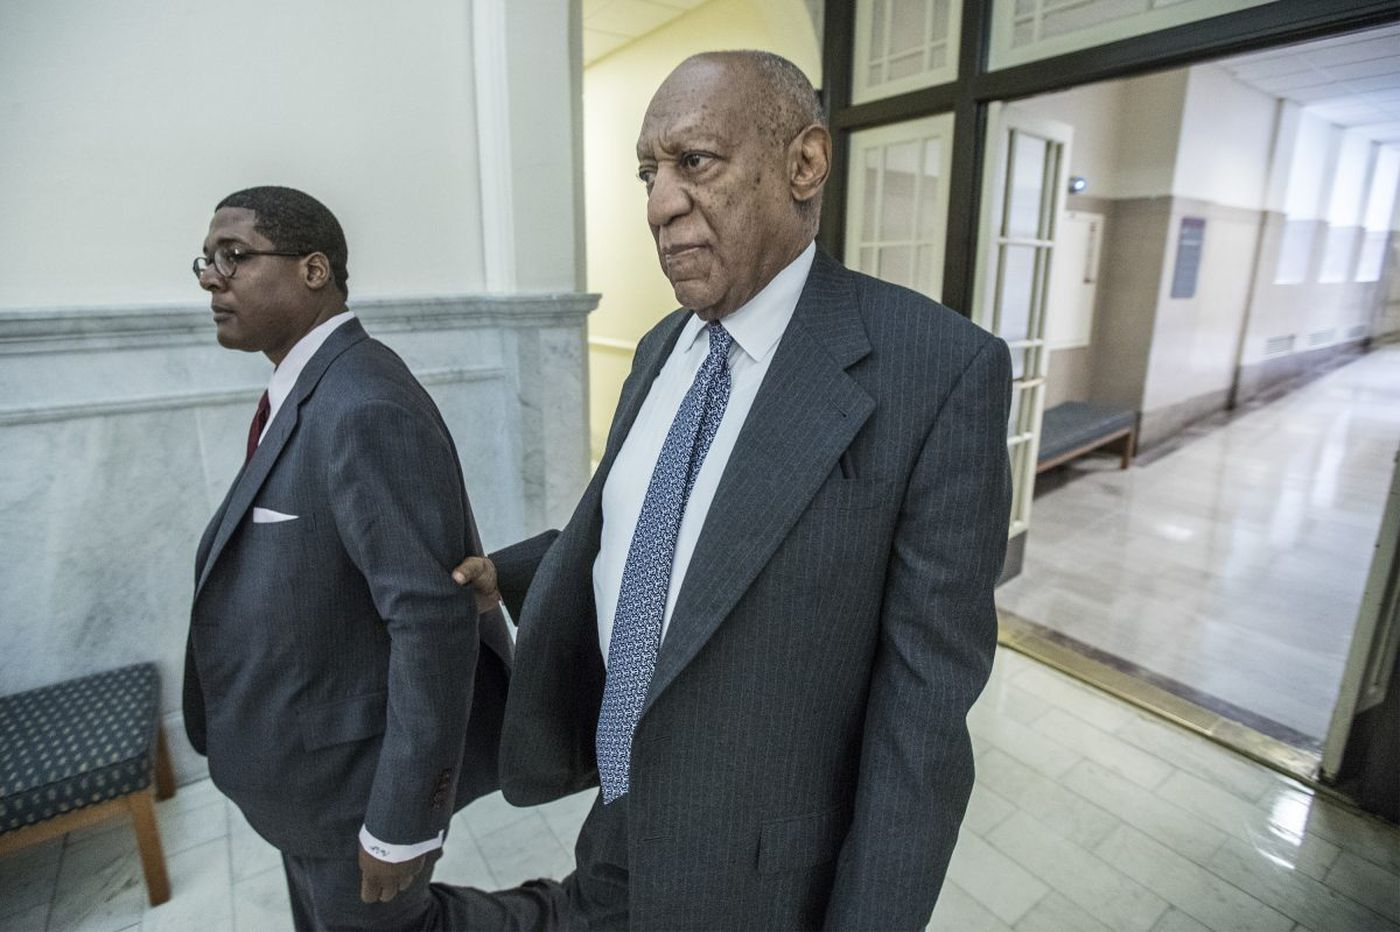 Bill Cosby's payout to Andrea Constand will be revealed at trial, judge rules